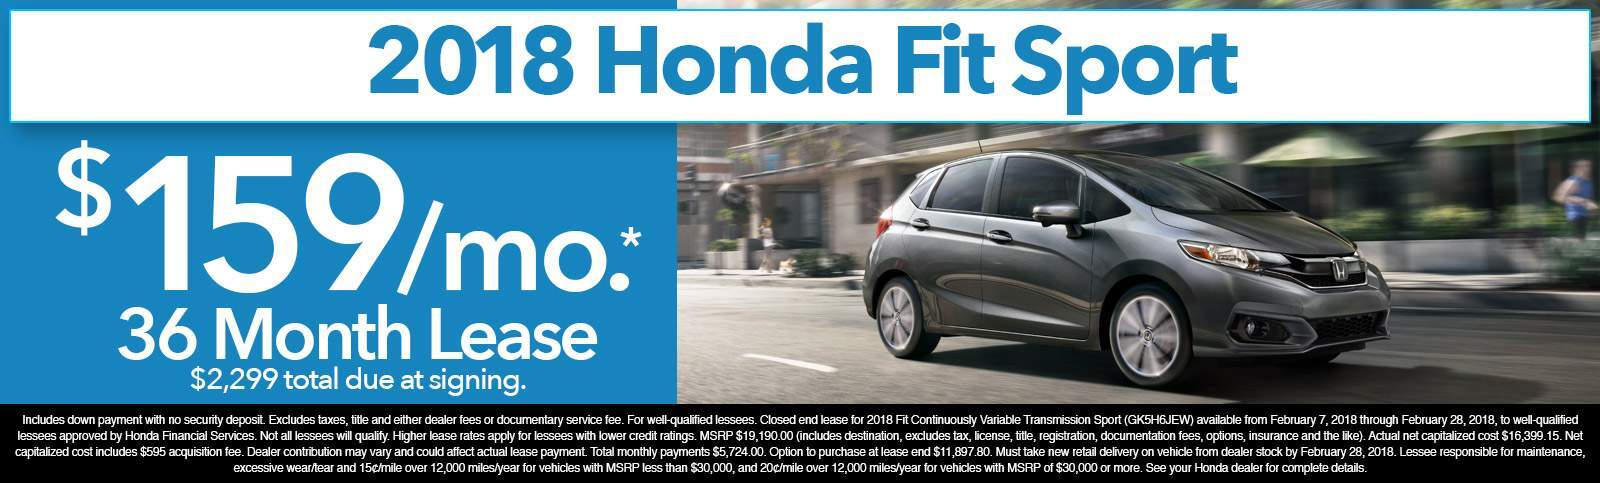 2018 Honda Fit Spot Lease